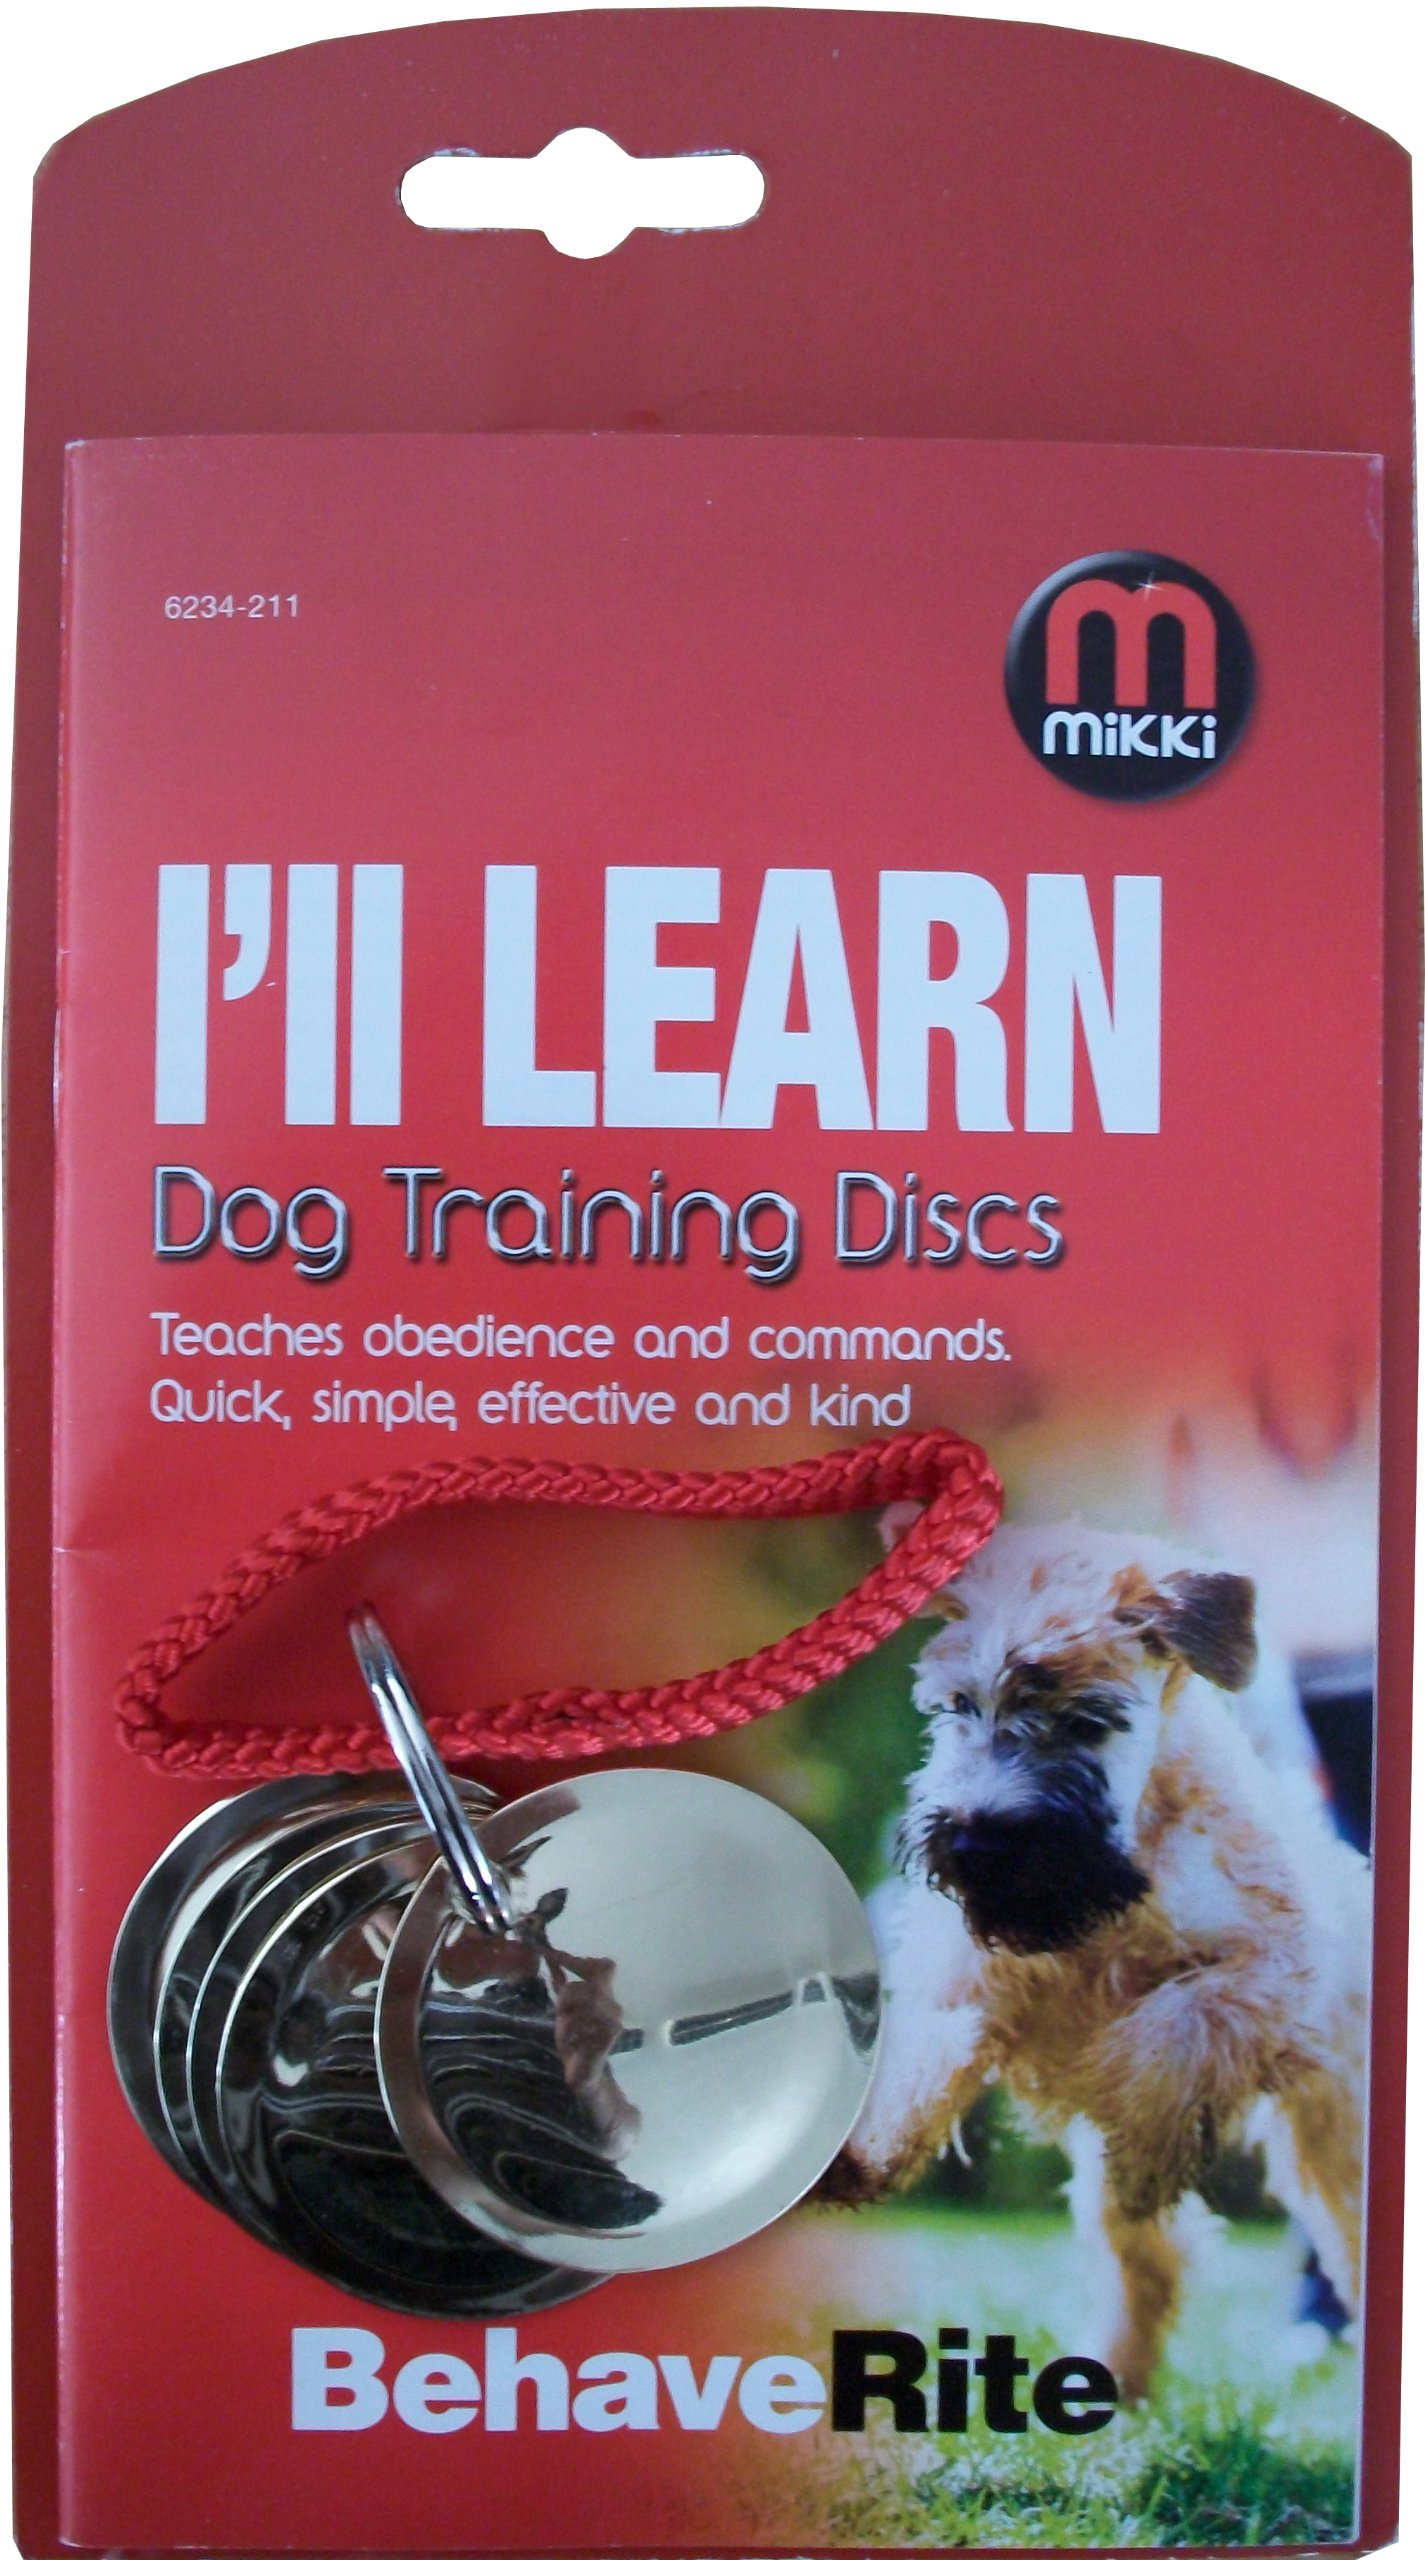 Mikki Dog Puppy Training Discs for Obedience, Commands, Recall, Agility, Includes Training Guide